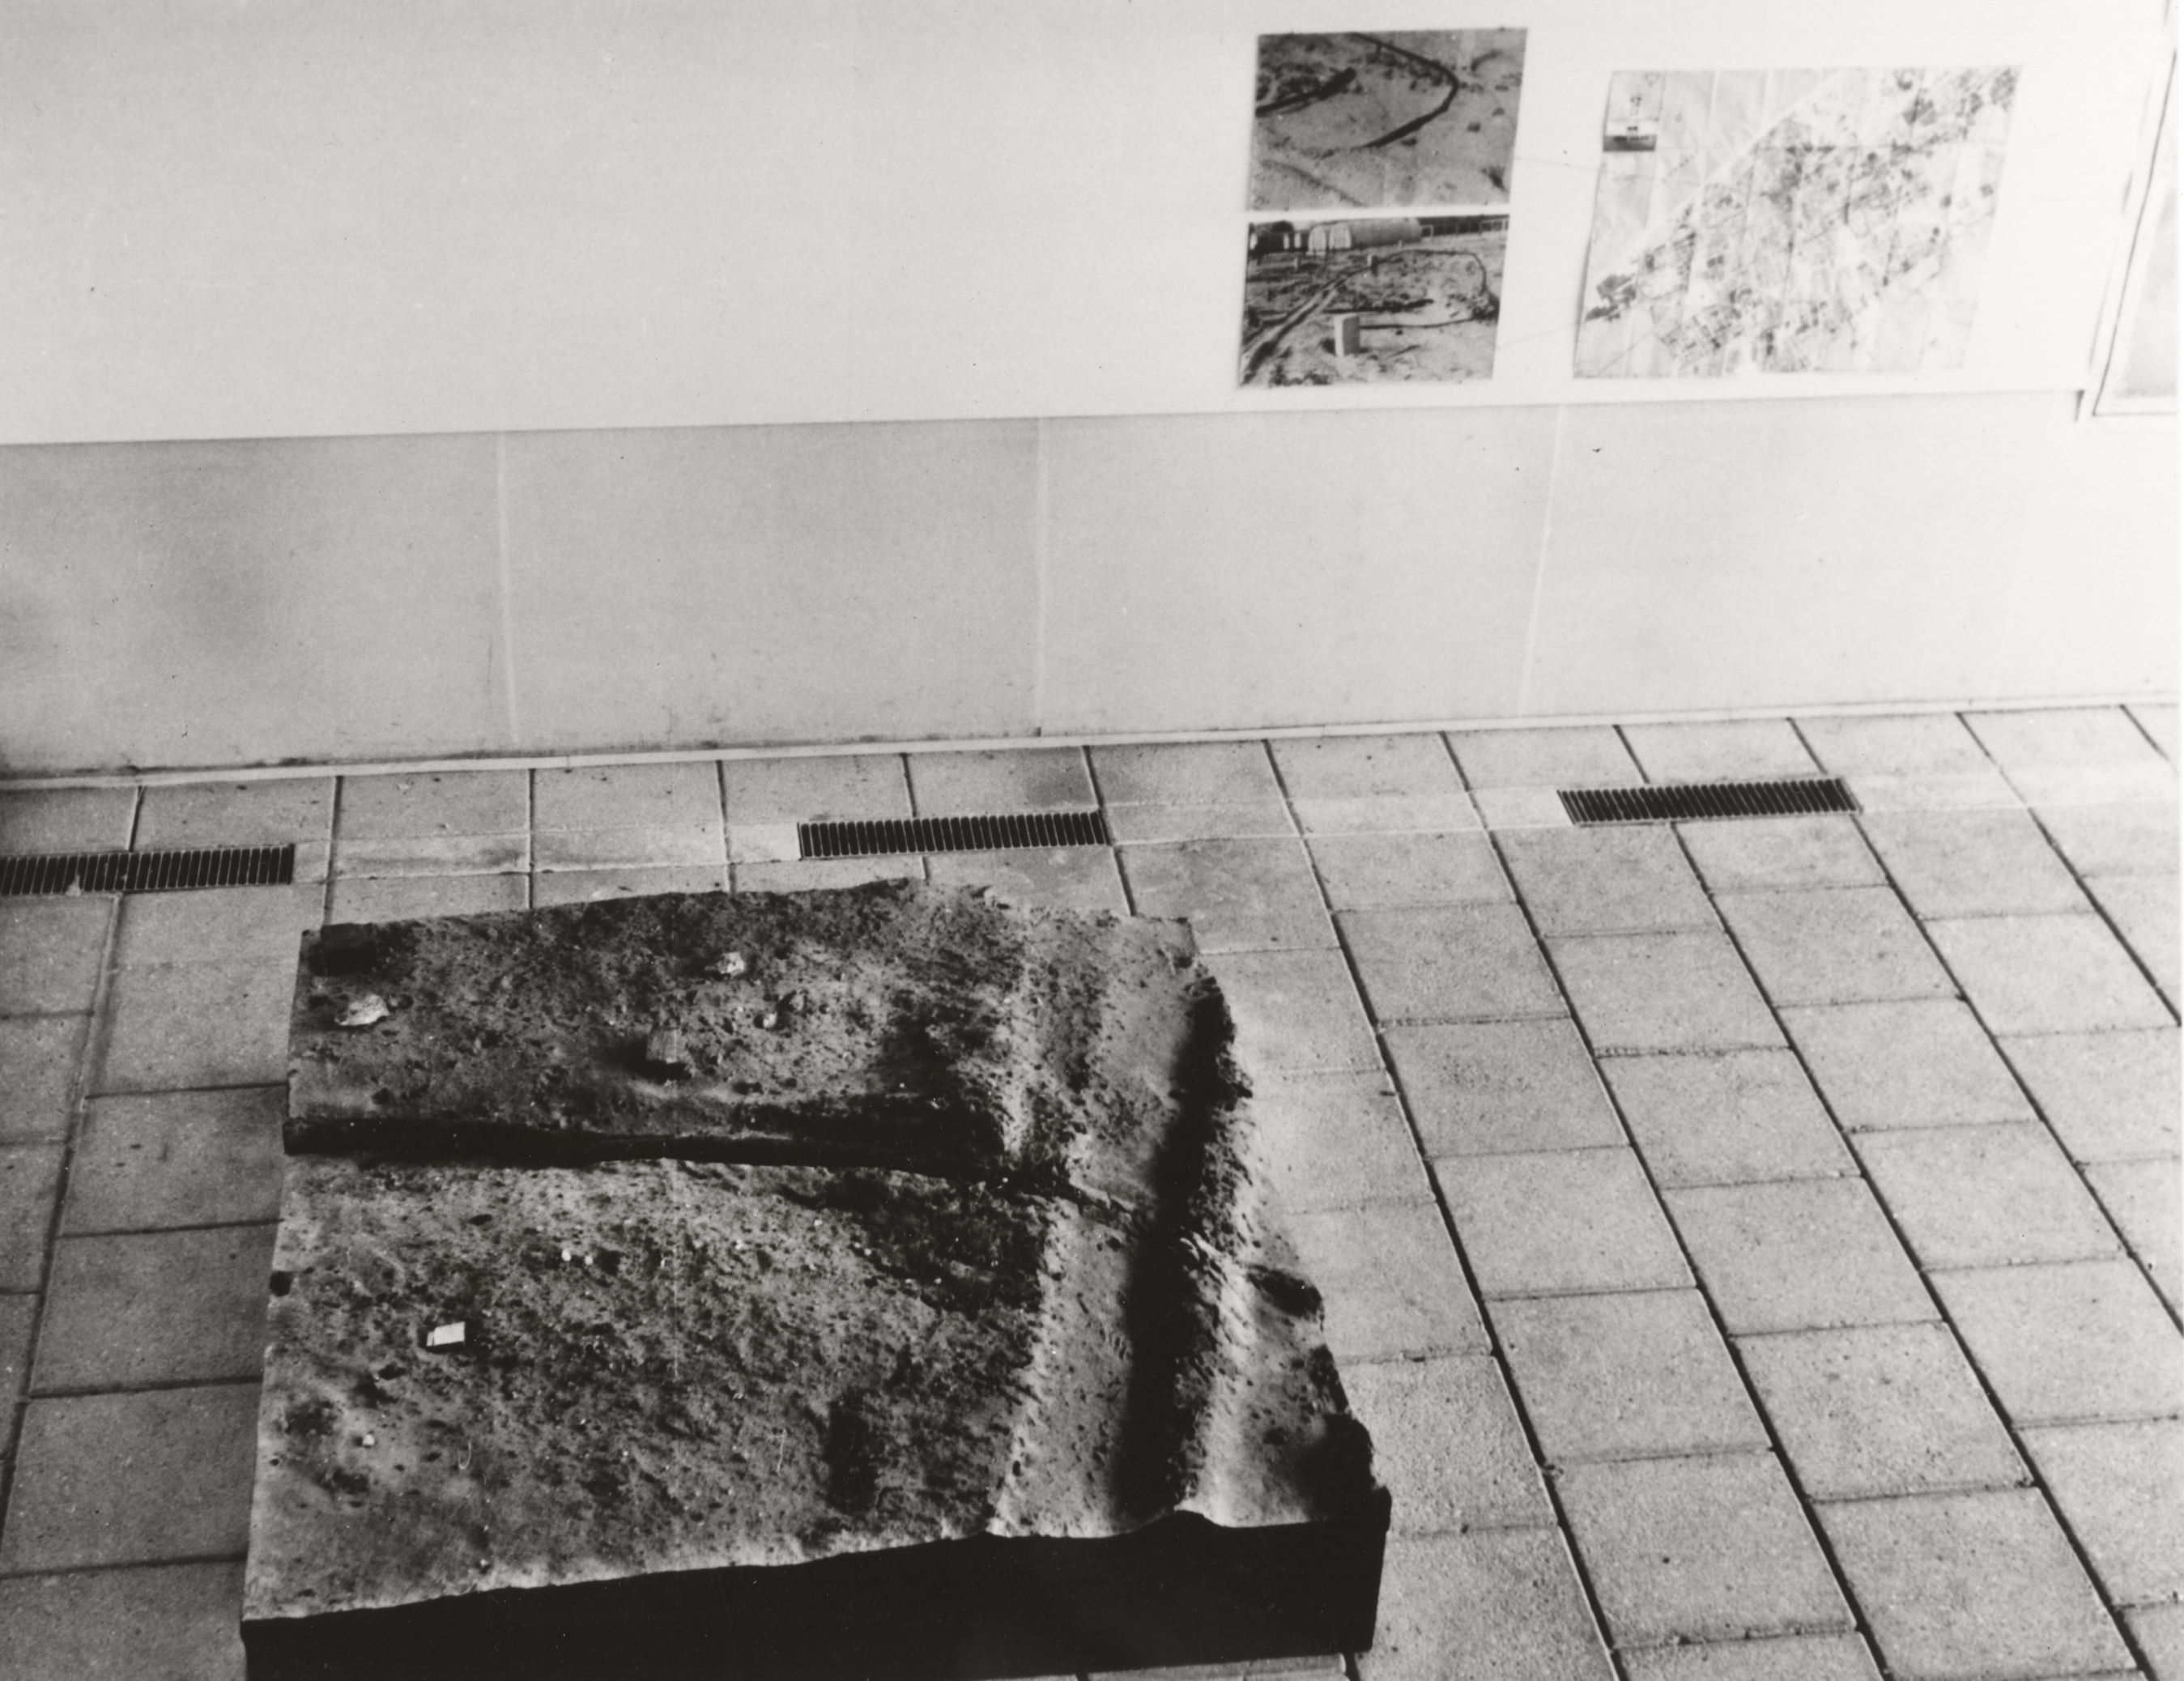 installation view, Gemeentemuseum, The Hague, 1970 (showing The Hague Study, 1970, World Series 1968–)